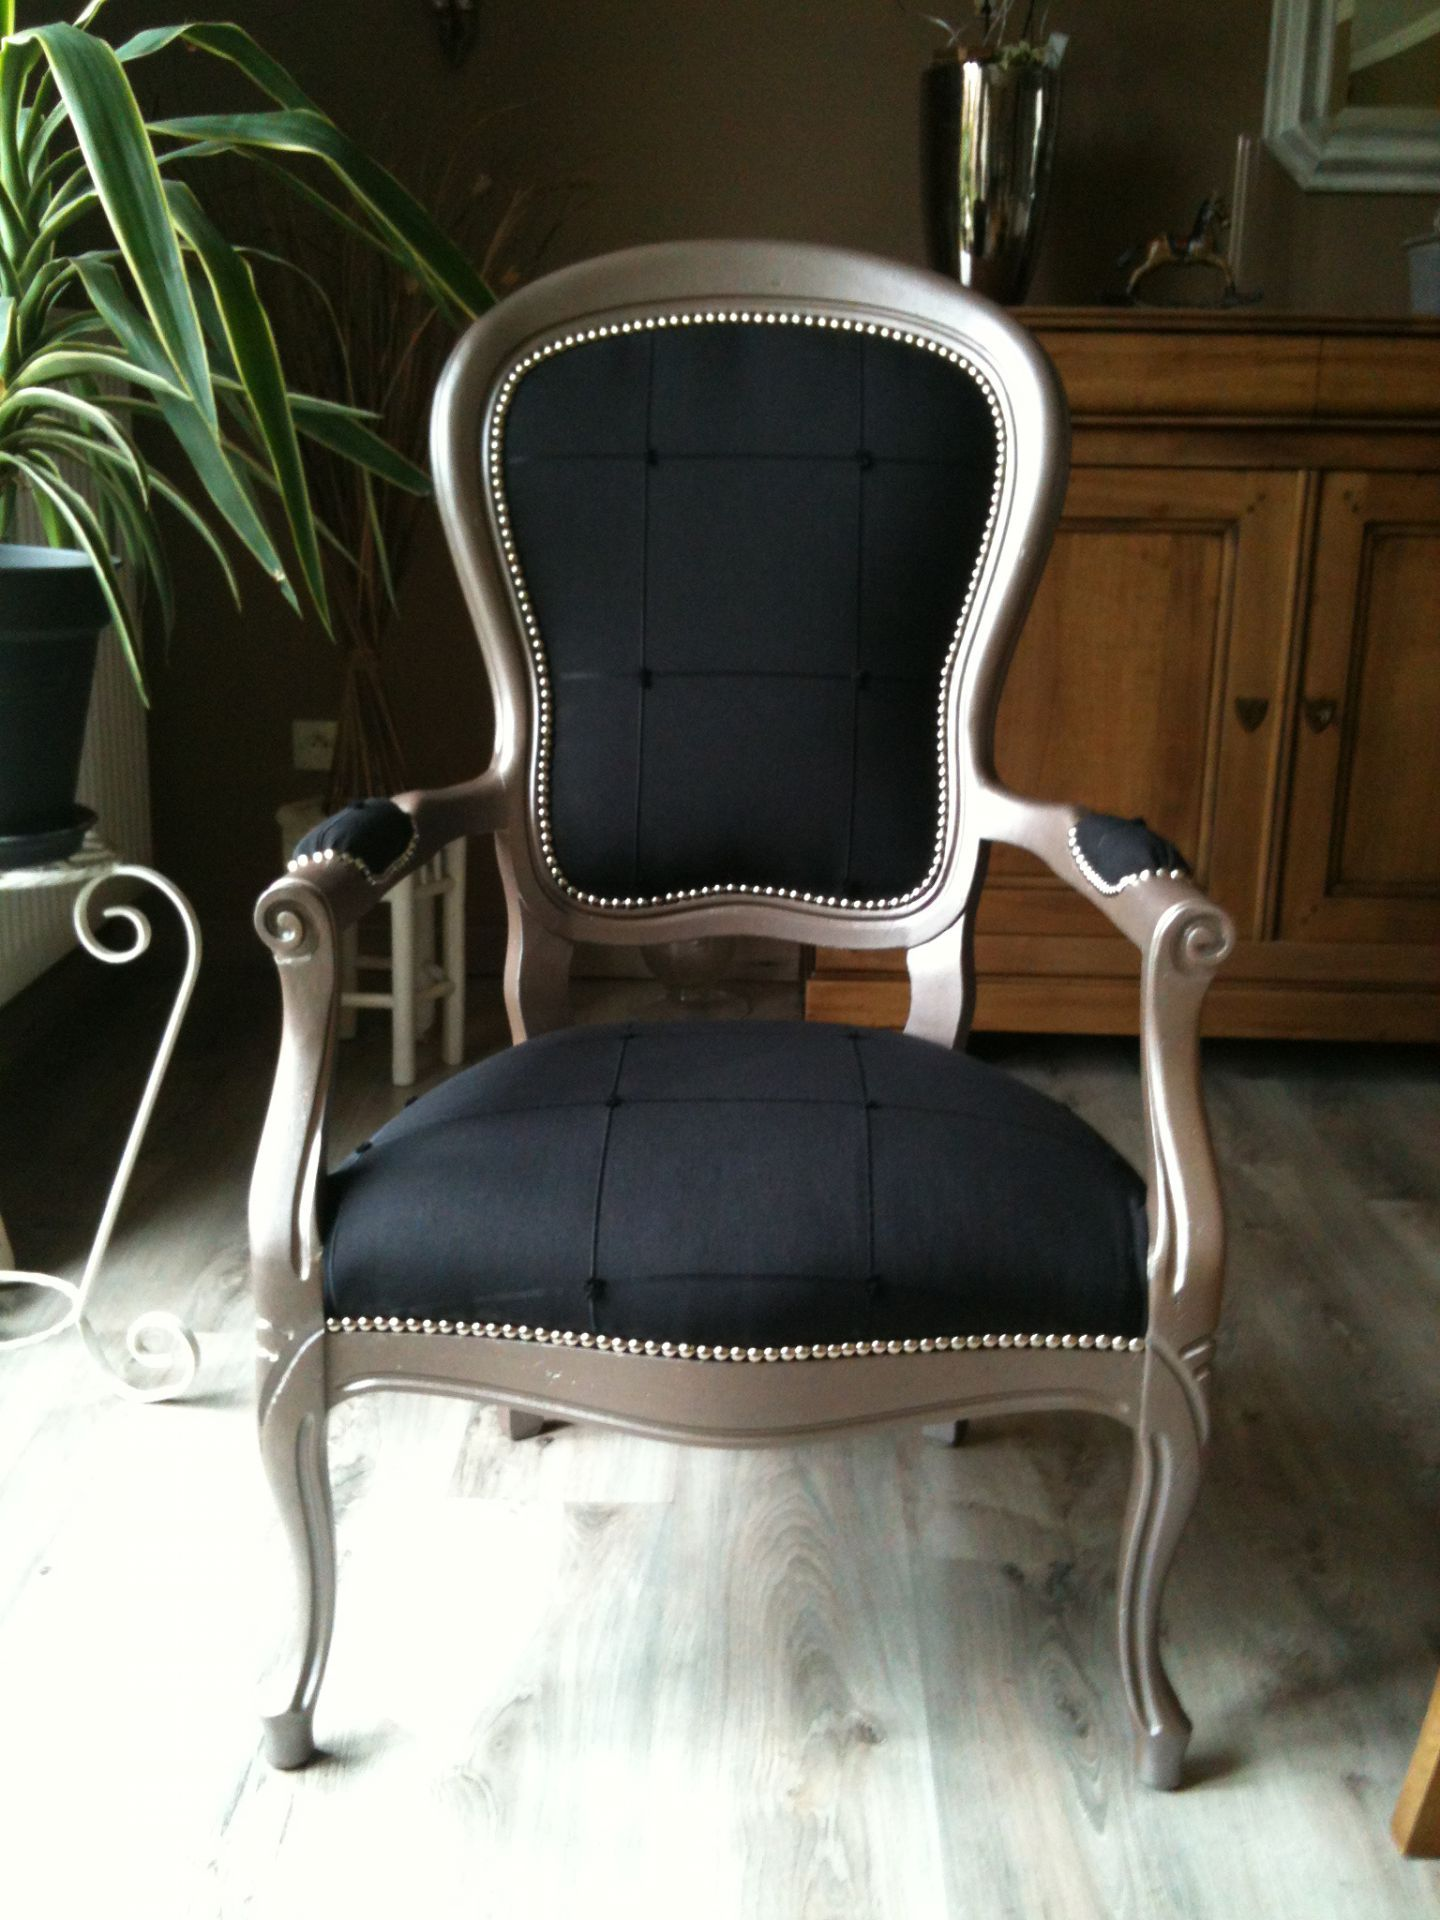 photos restauration de si ges anciens voltaire cabriolet chaise medaillon fauteuil medaillon. Black Bedroom Furniture Sets. Home Design Ideas